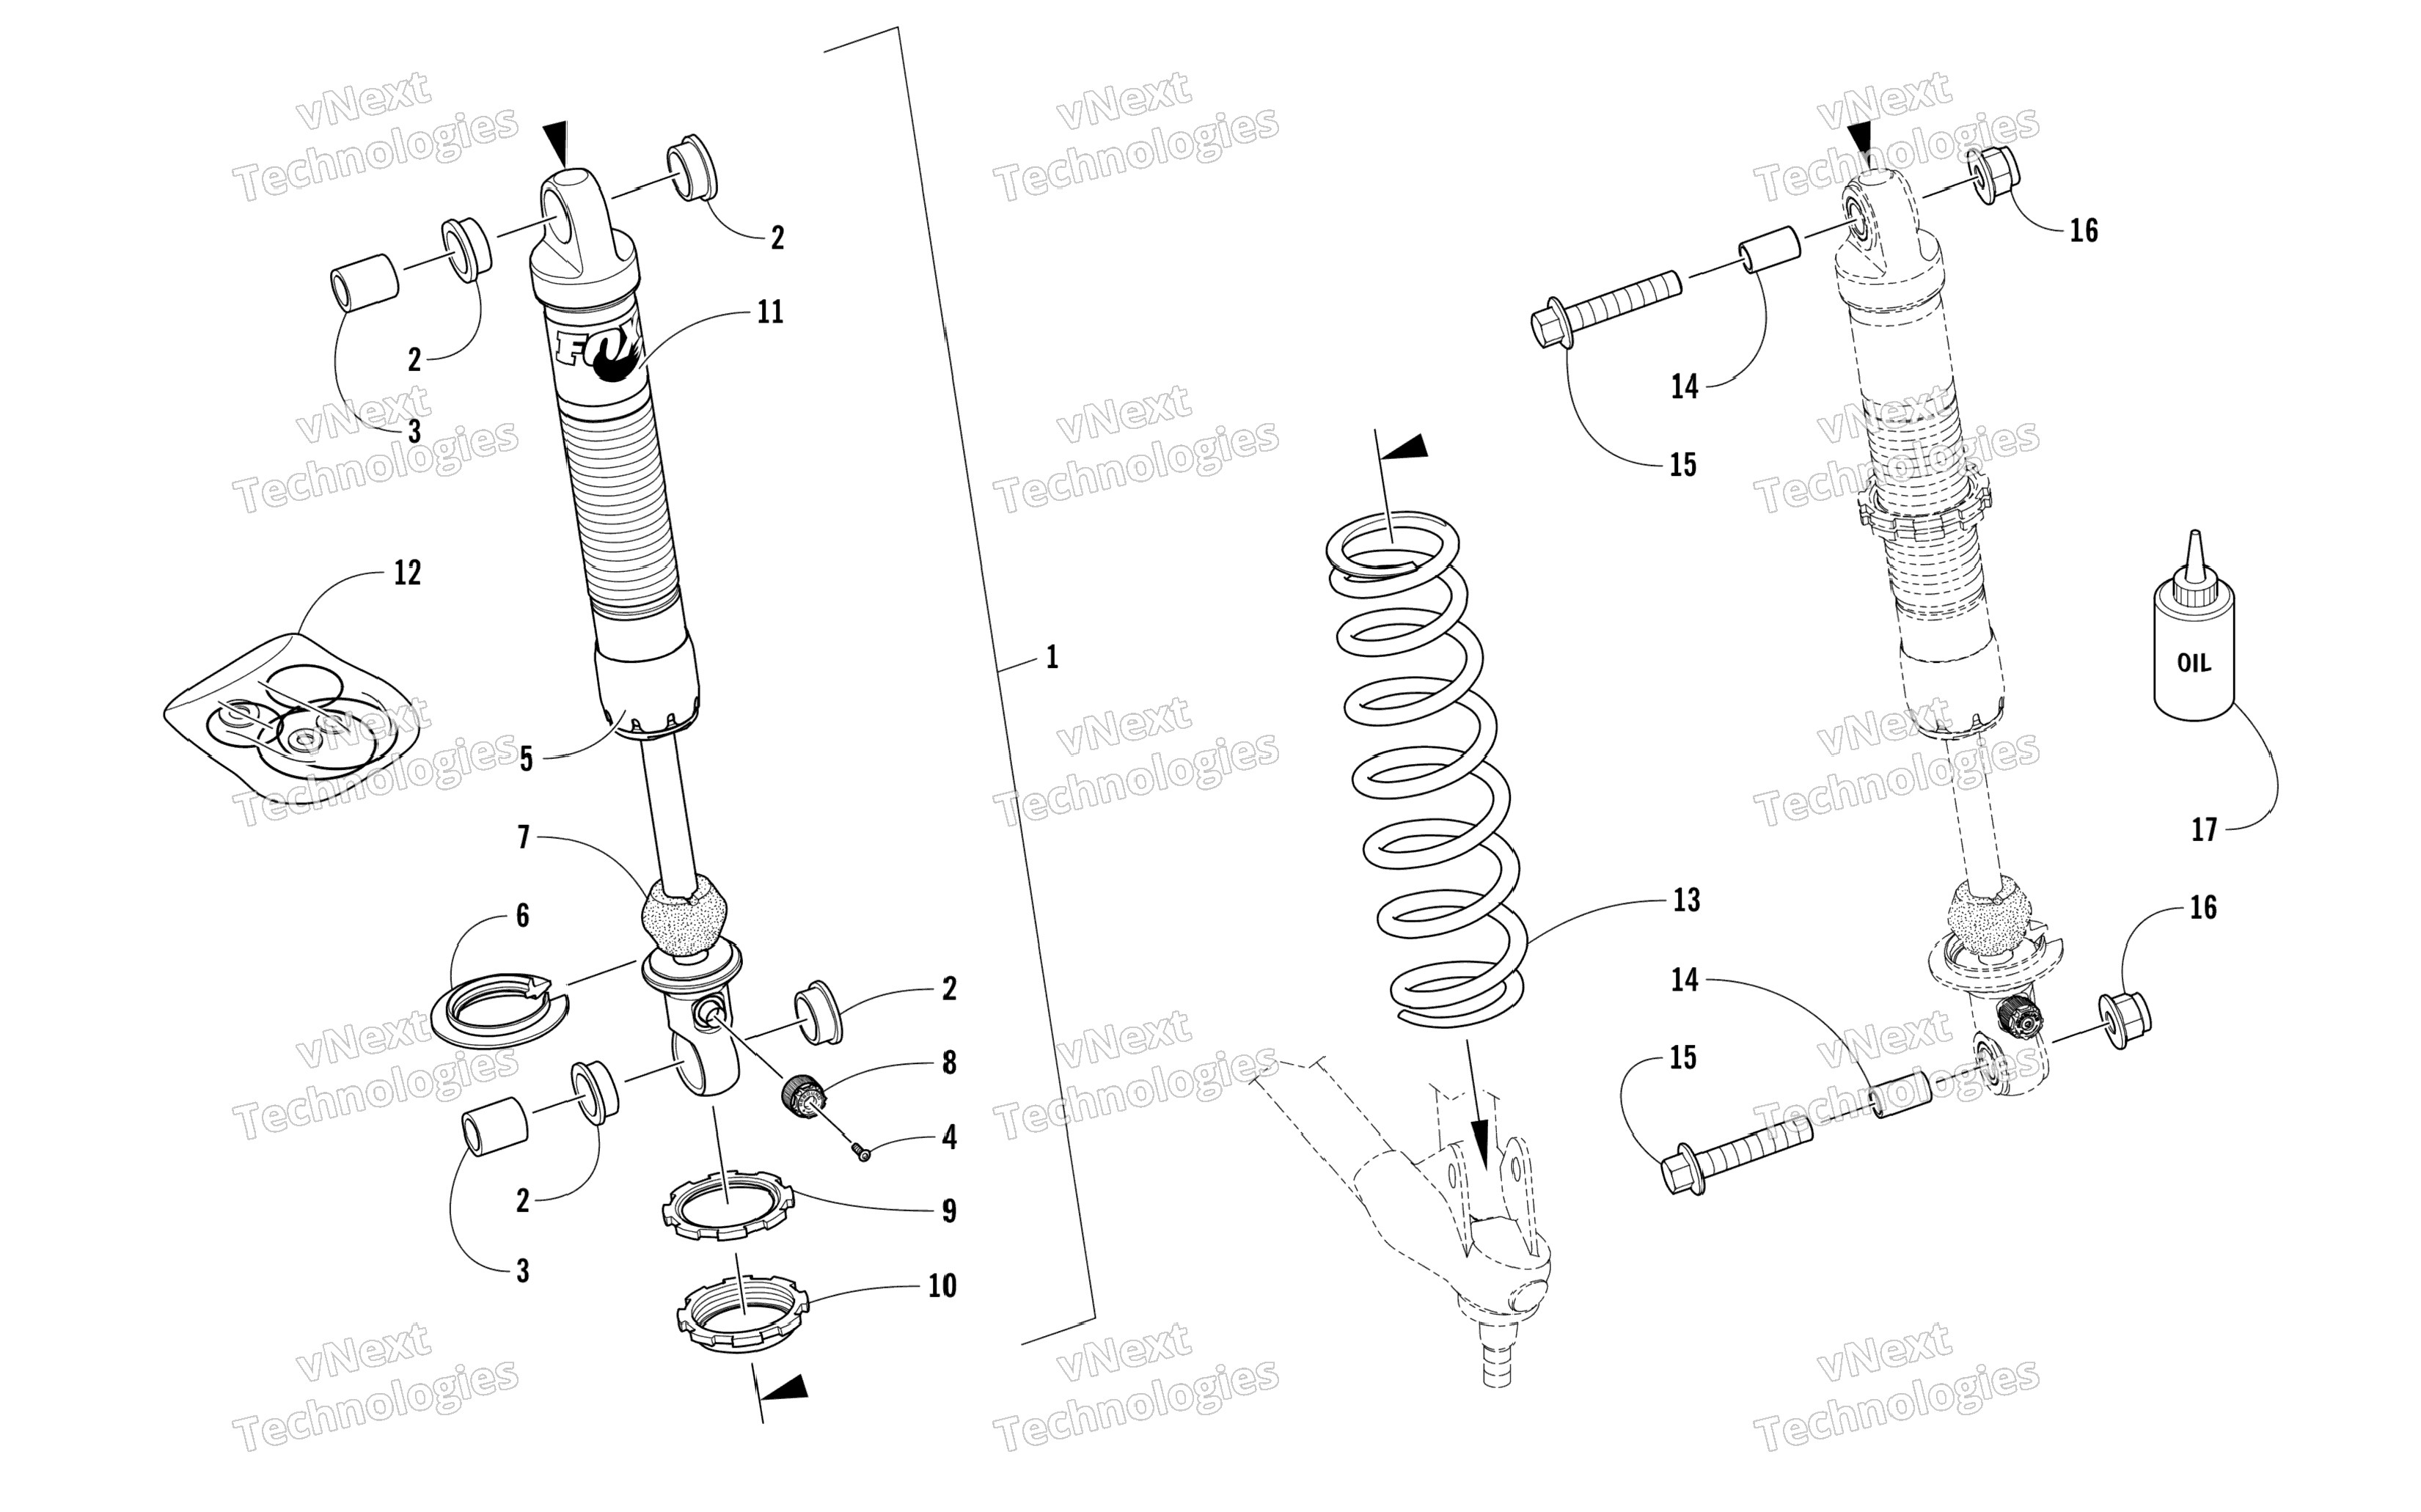 Shock Absorbers Diagram Front Suspension Shock Absorber assembly дРя Arctic Cat Zr Of Shock Absorbers Diagram